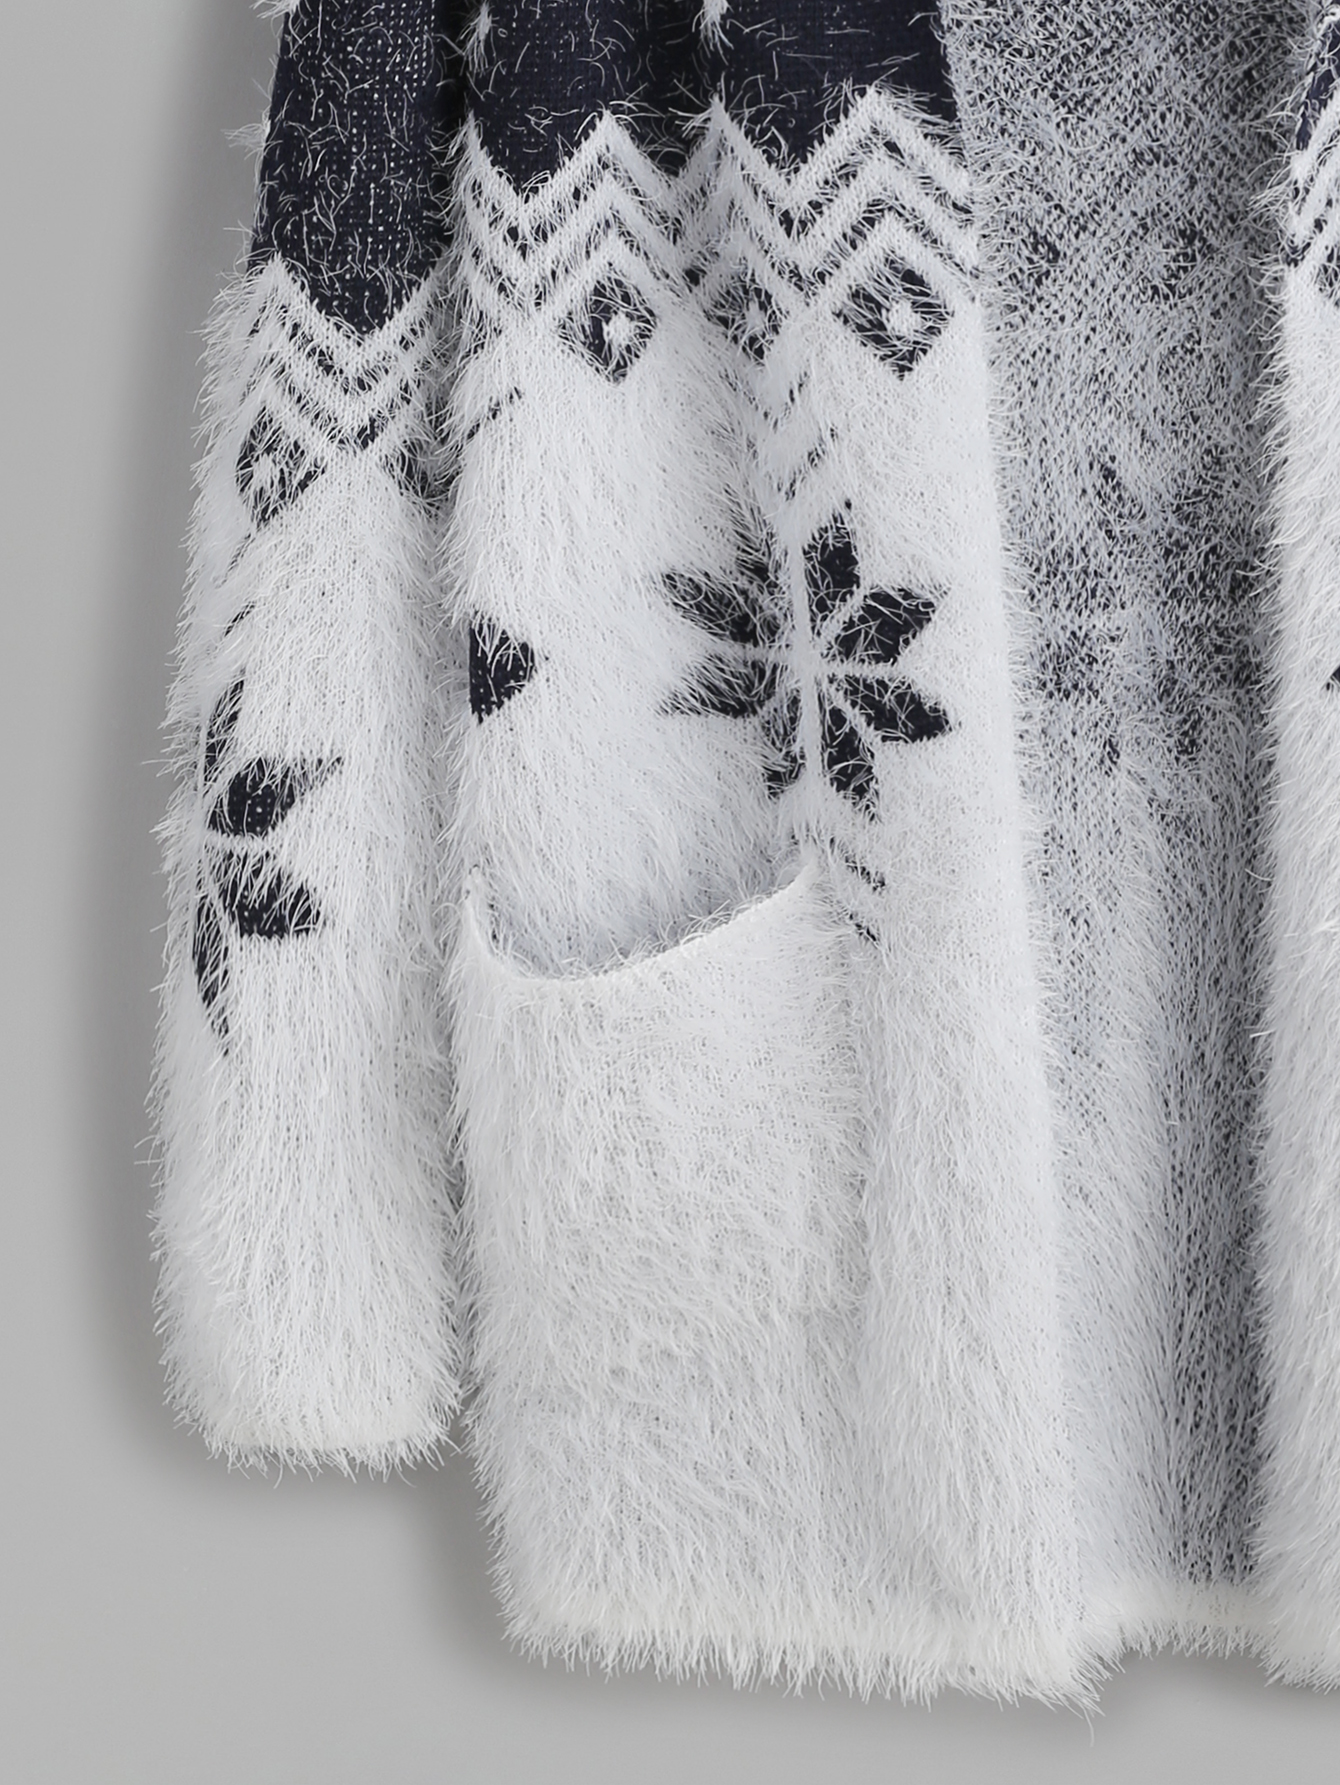 f1552f5fcc1a Color Block Snowflake Pattern Fuzzy Hooded Sweater Coat Cardigan -  Thumbnail 1 ...